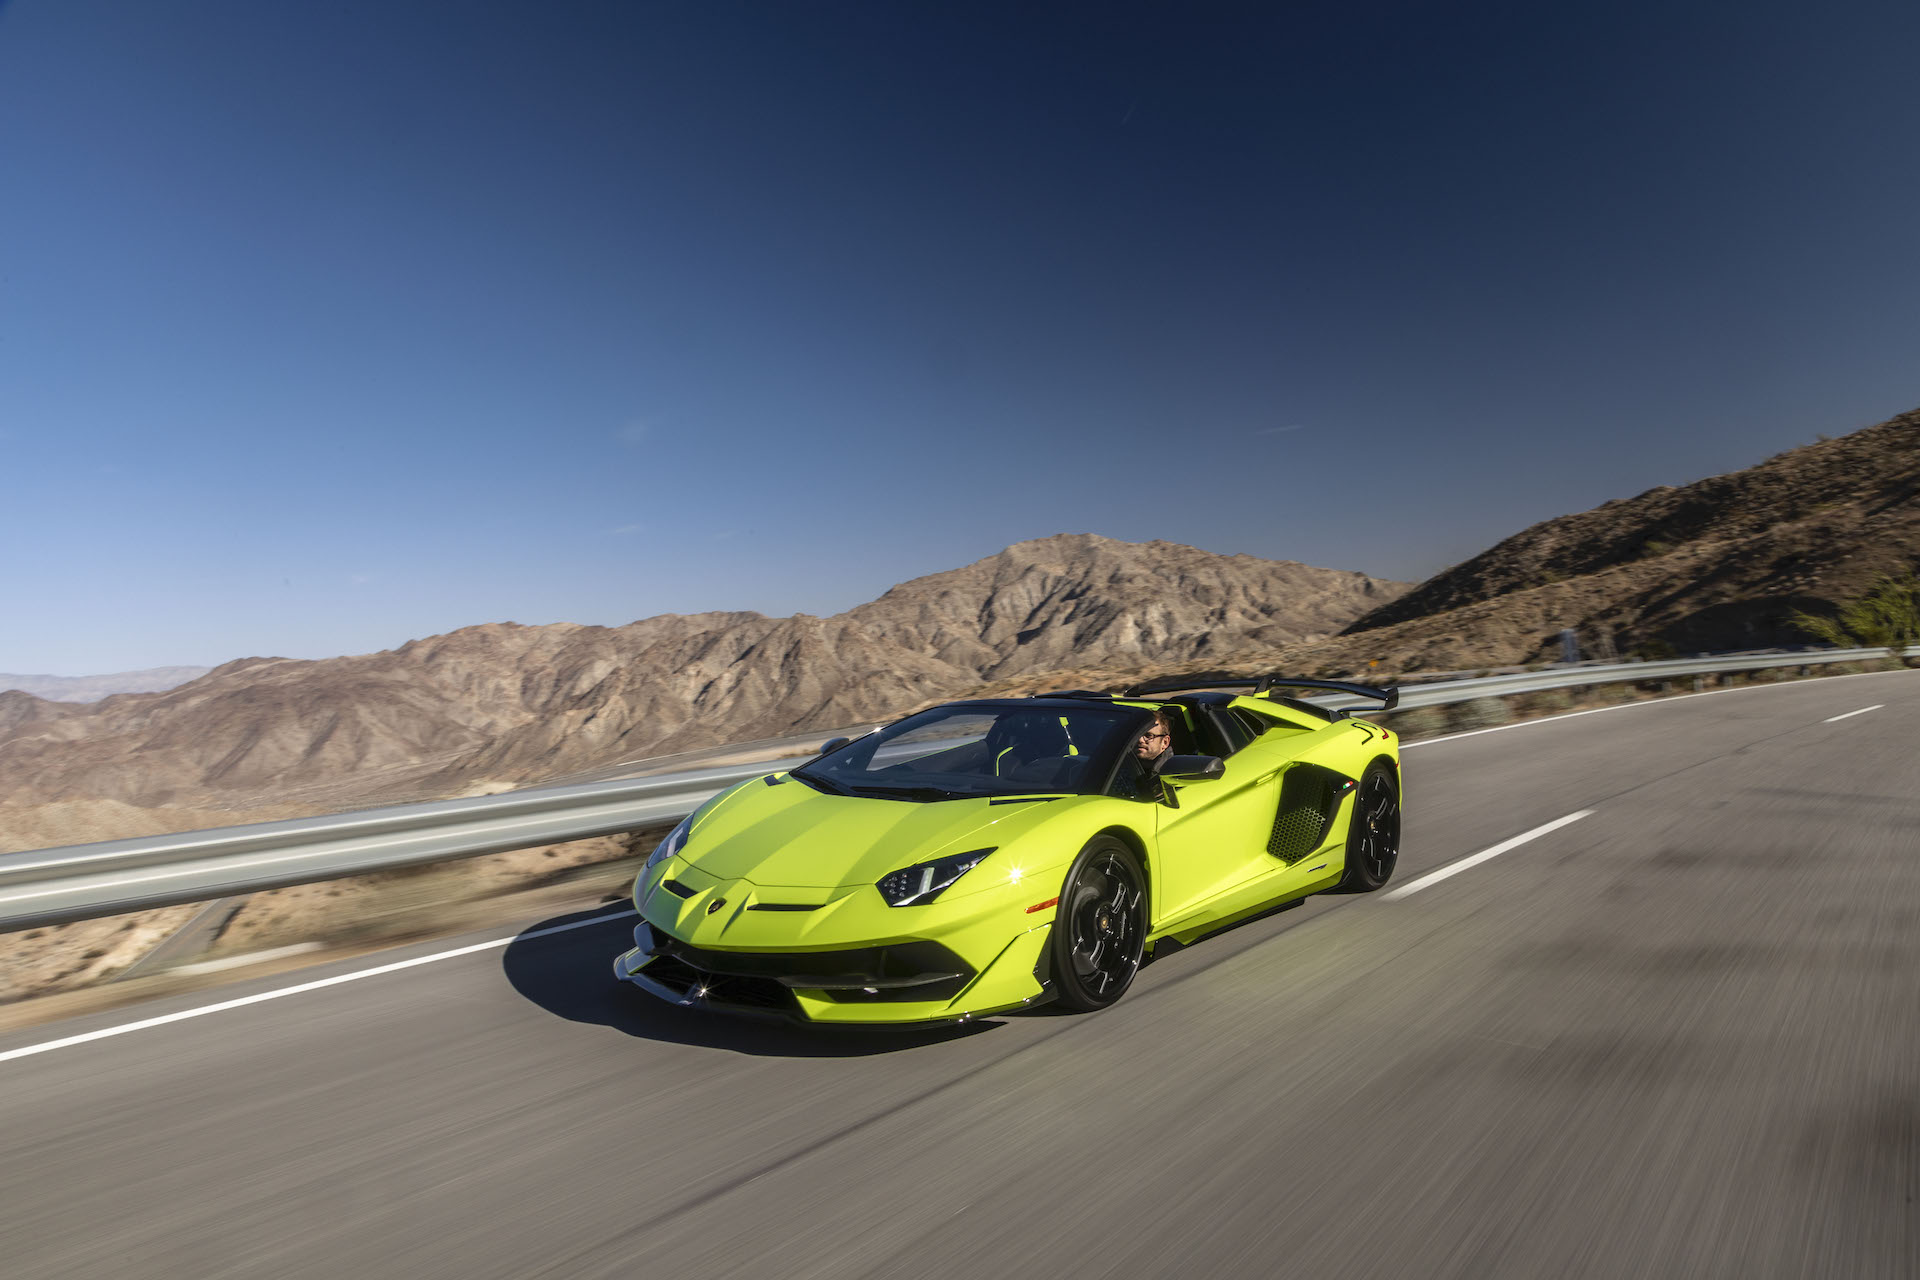 First Drive Review 2020 Lamborghini Aventador Svj Roadster Plays Among The Masters